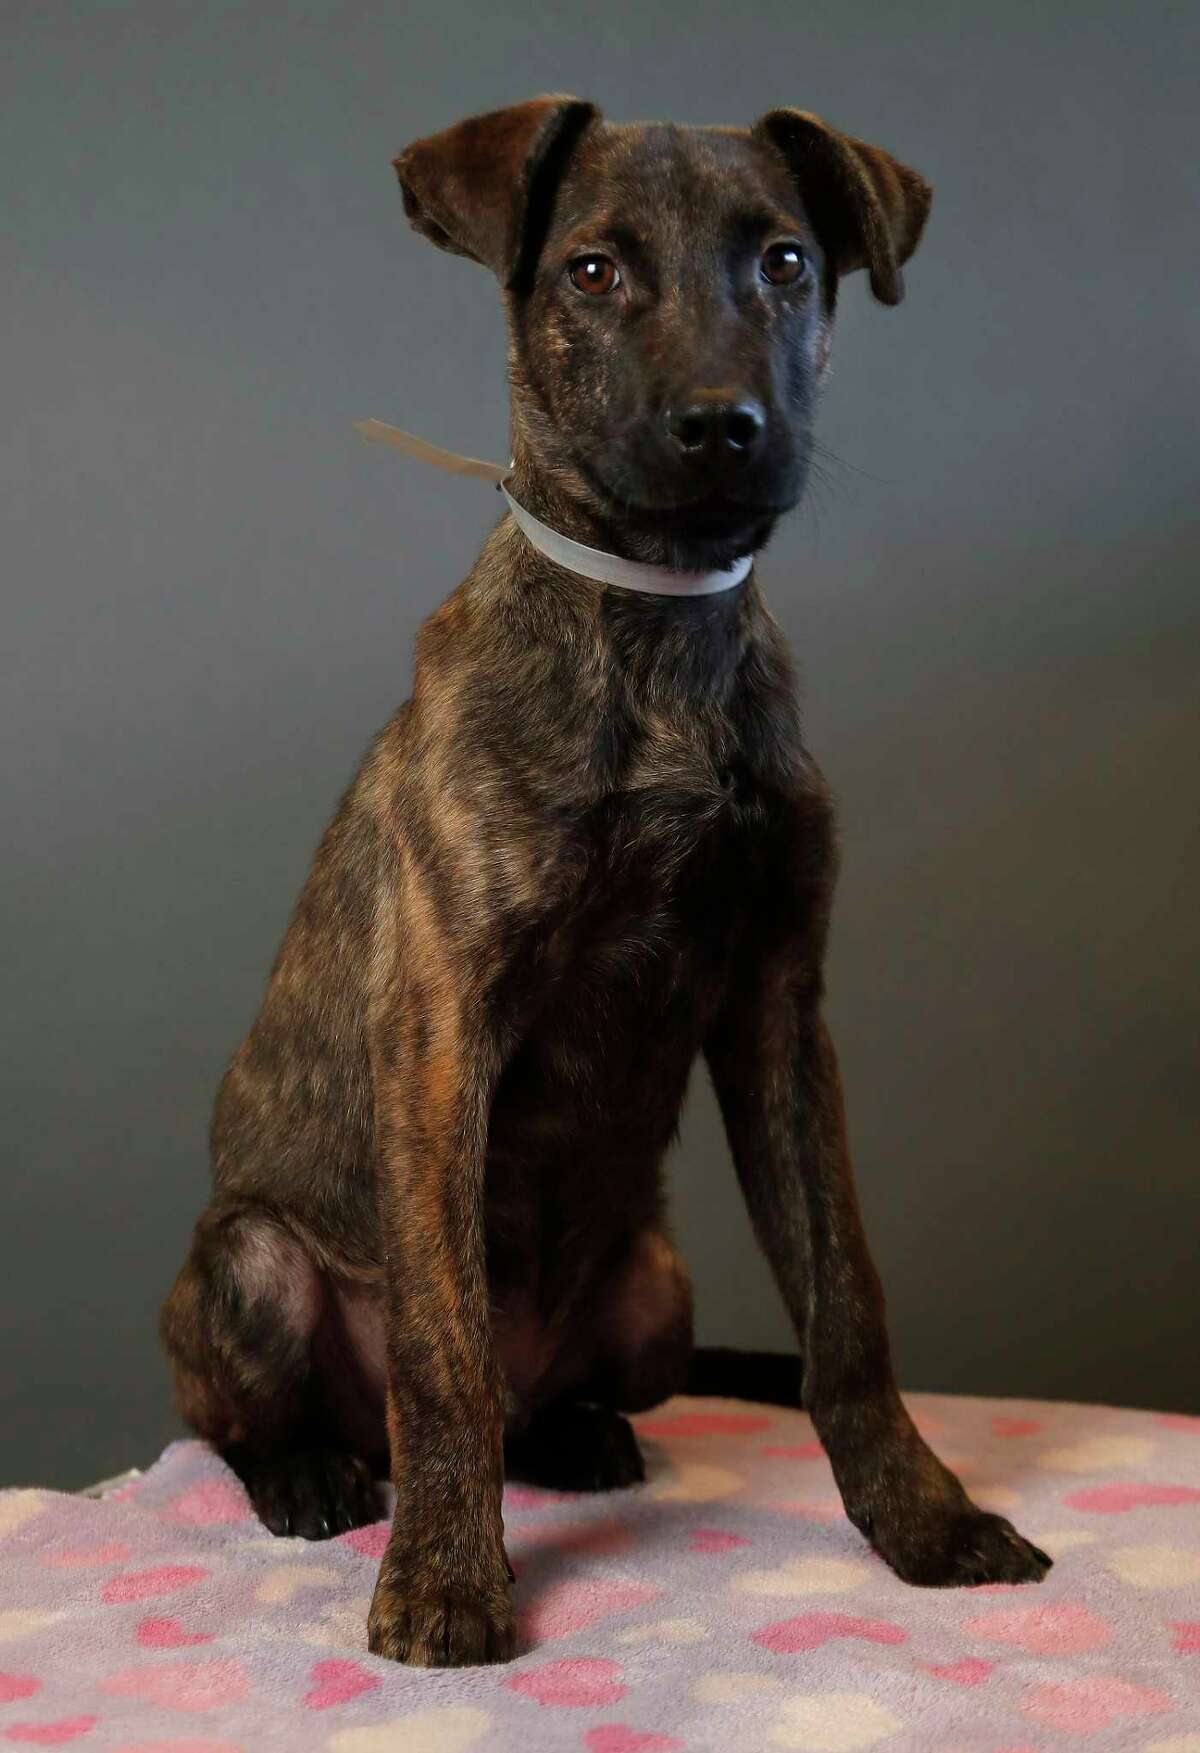 ADRIAN (Animal ID: A1592803) Adrian is a 4-month-old, neutered male, brindle Plott Hound/Dutch Shepherd mix and is available for adoption from BARC Animal Shelter. Photographed, Wednesday, Nov. 14, 2018, in Houston.